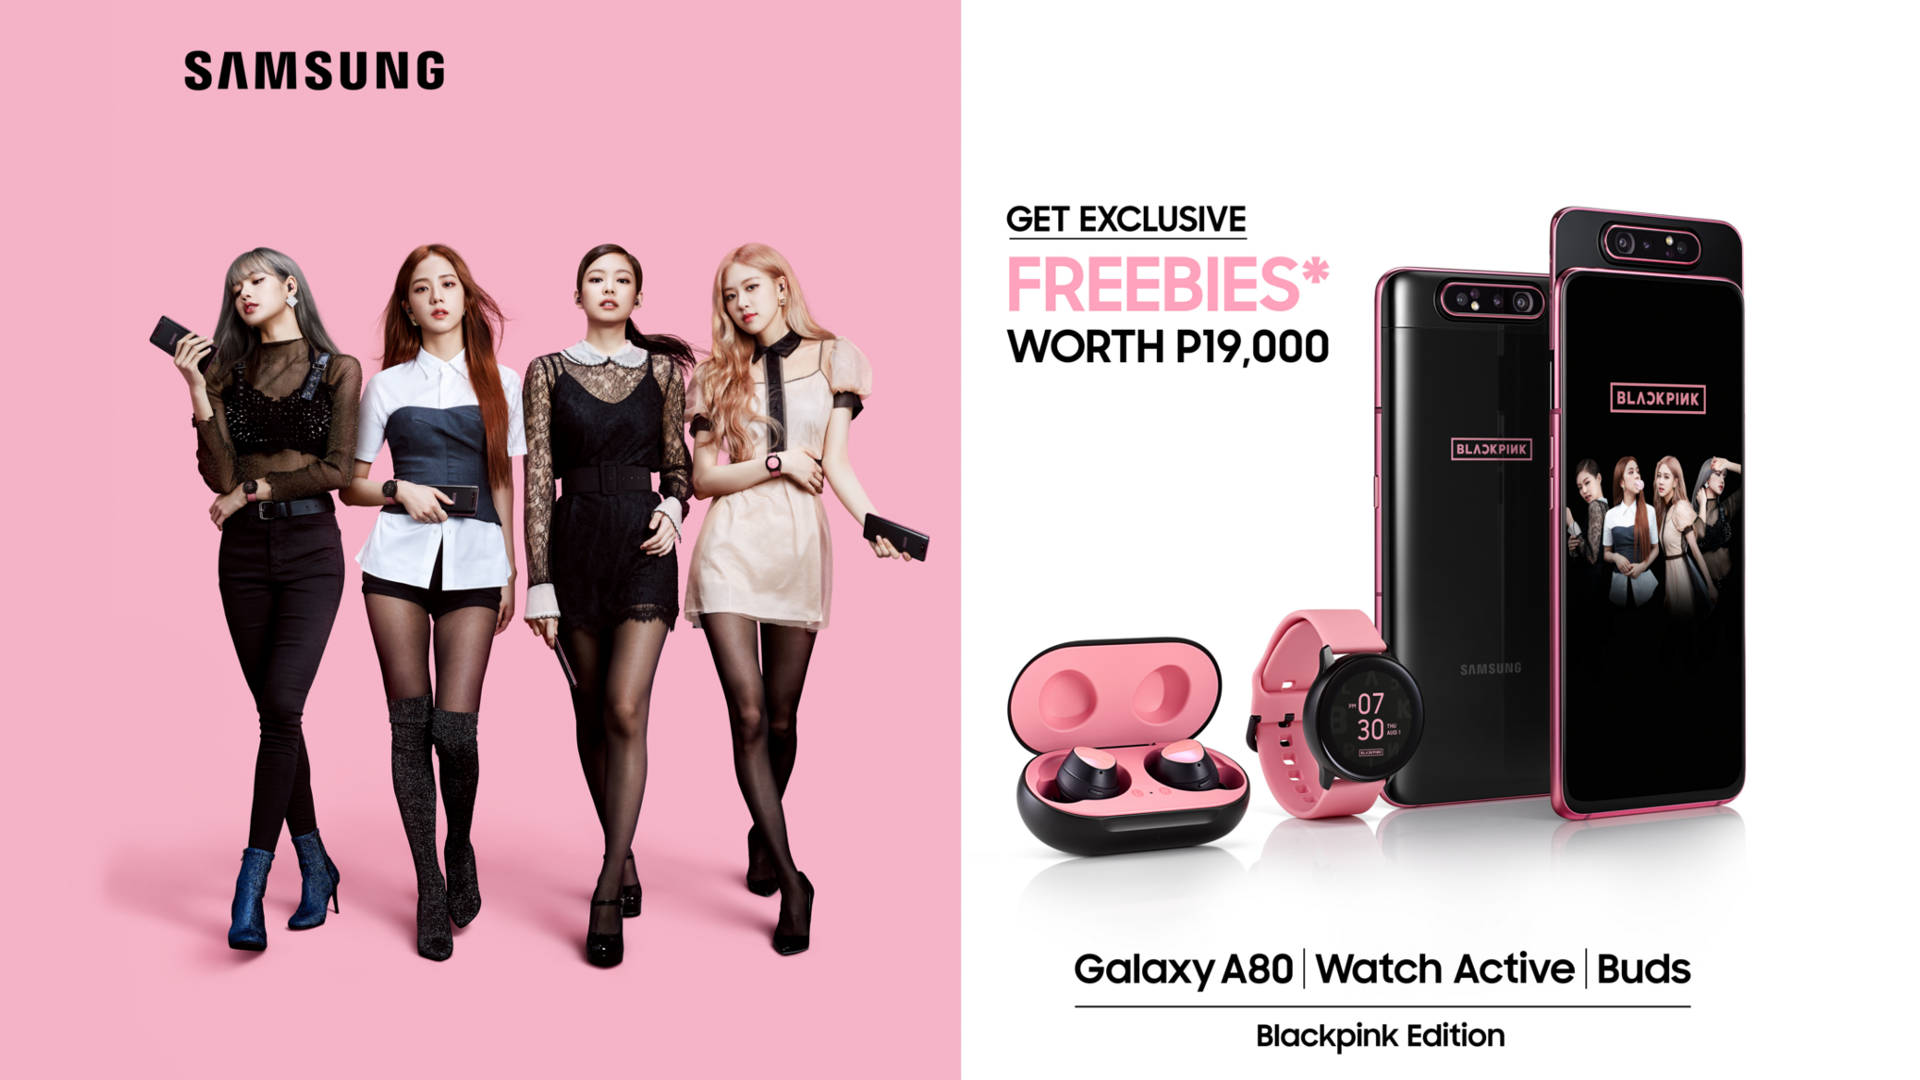 Galaxy A80 Blackpink, Samsung Galaxy A80 Blackpink Edition will be coming to the Philippines!, Gadget Pilipinas